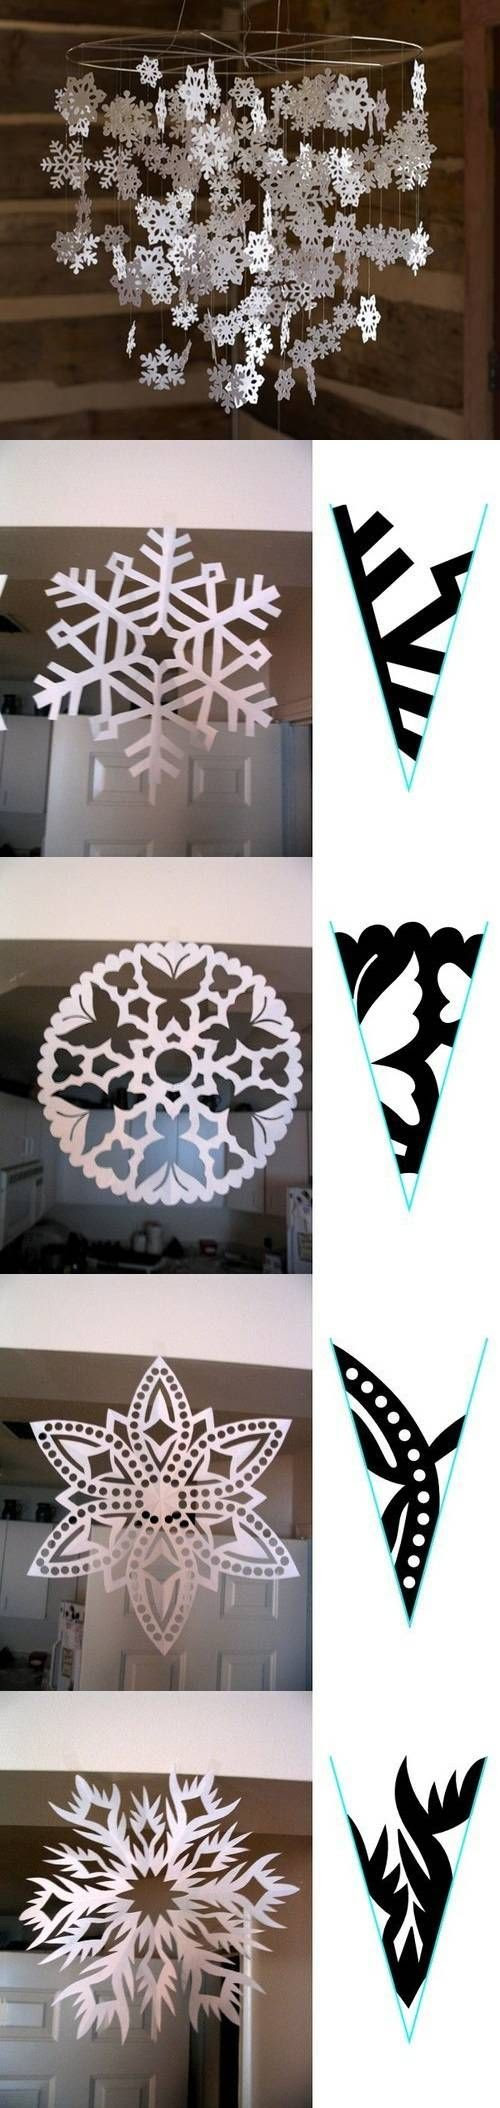 DIY Snowflake Paper Pattern DIY Projects #DIY #craft #crafts #paper #snowflake #winter #Christmas #decor #decorate #decoration #snow #holiday #holidays #Xmas